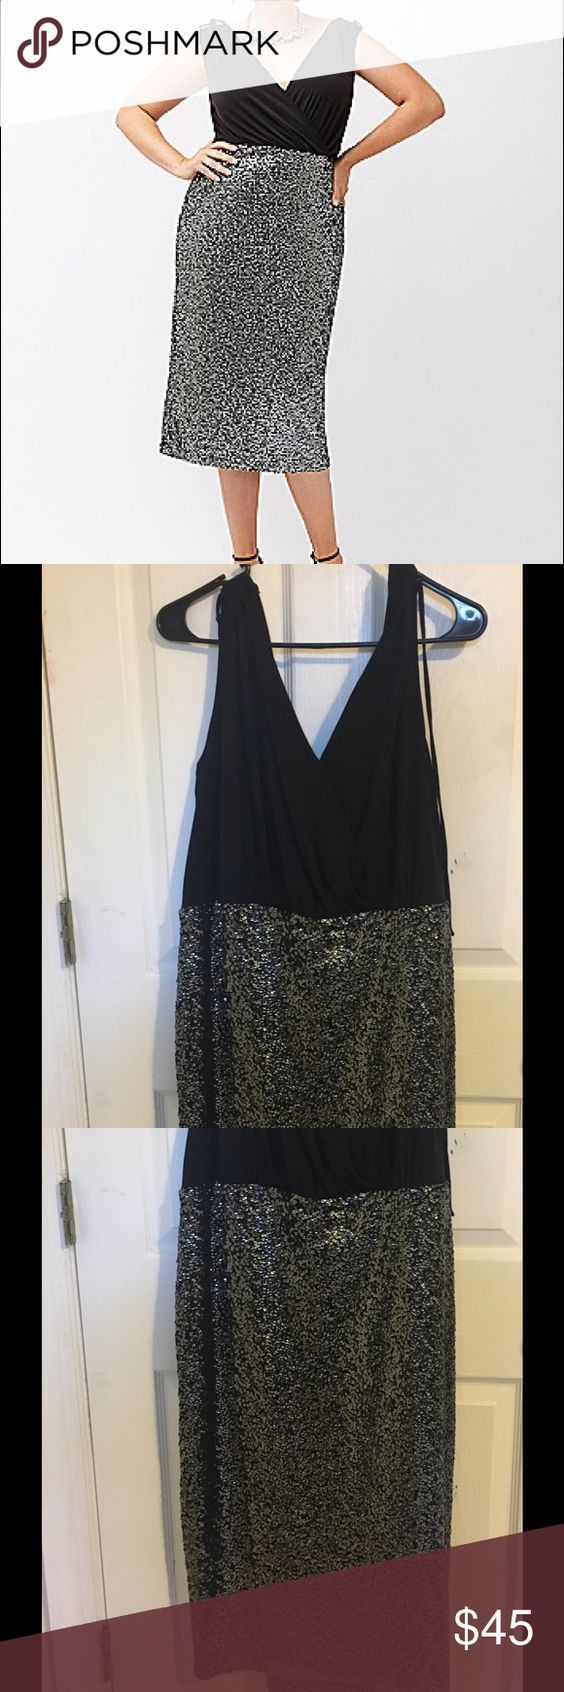 PRICE REDUCED Lane Bryant black sequin midi dress Never worn lane